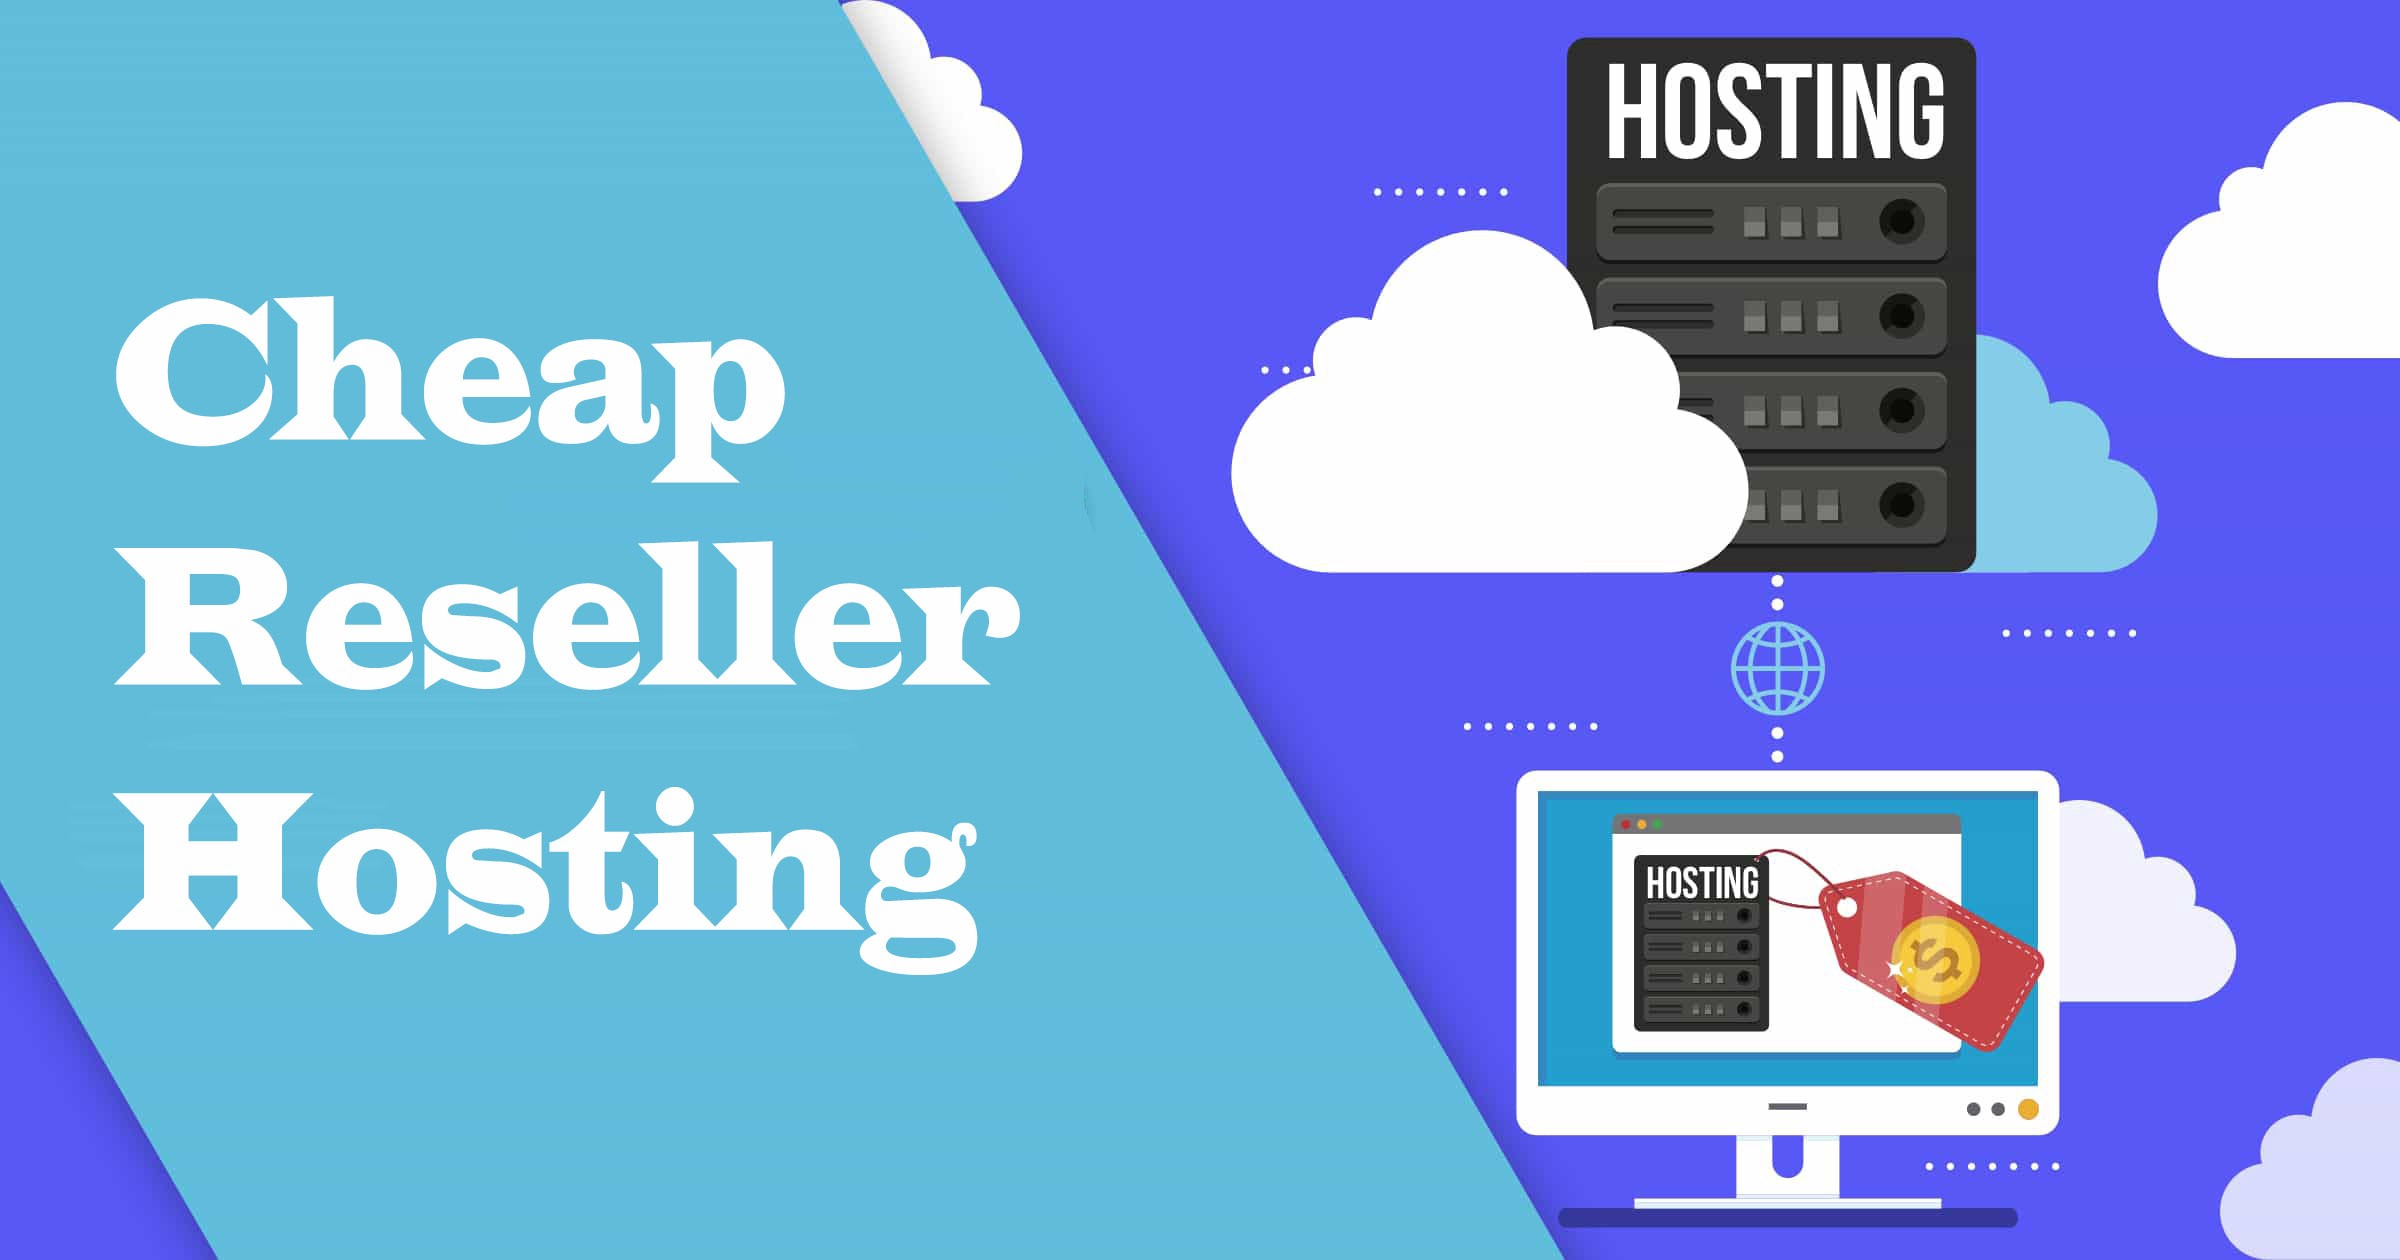 Reseller hosting - 10 Cpanel account - 50 GB Space - 1 month - Money back Grantee